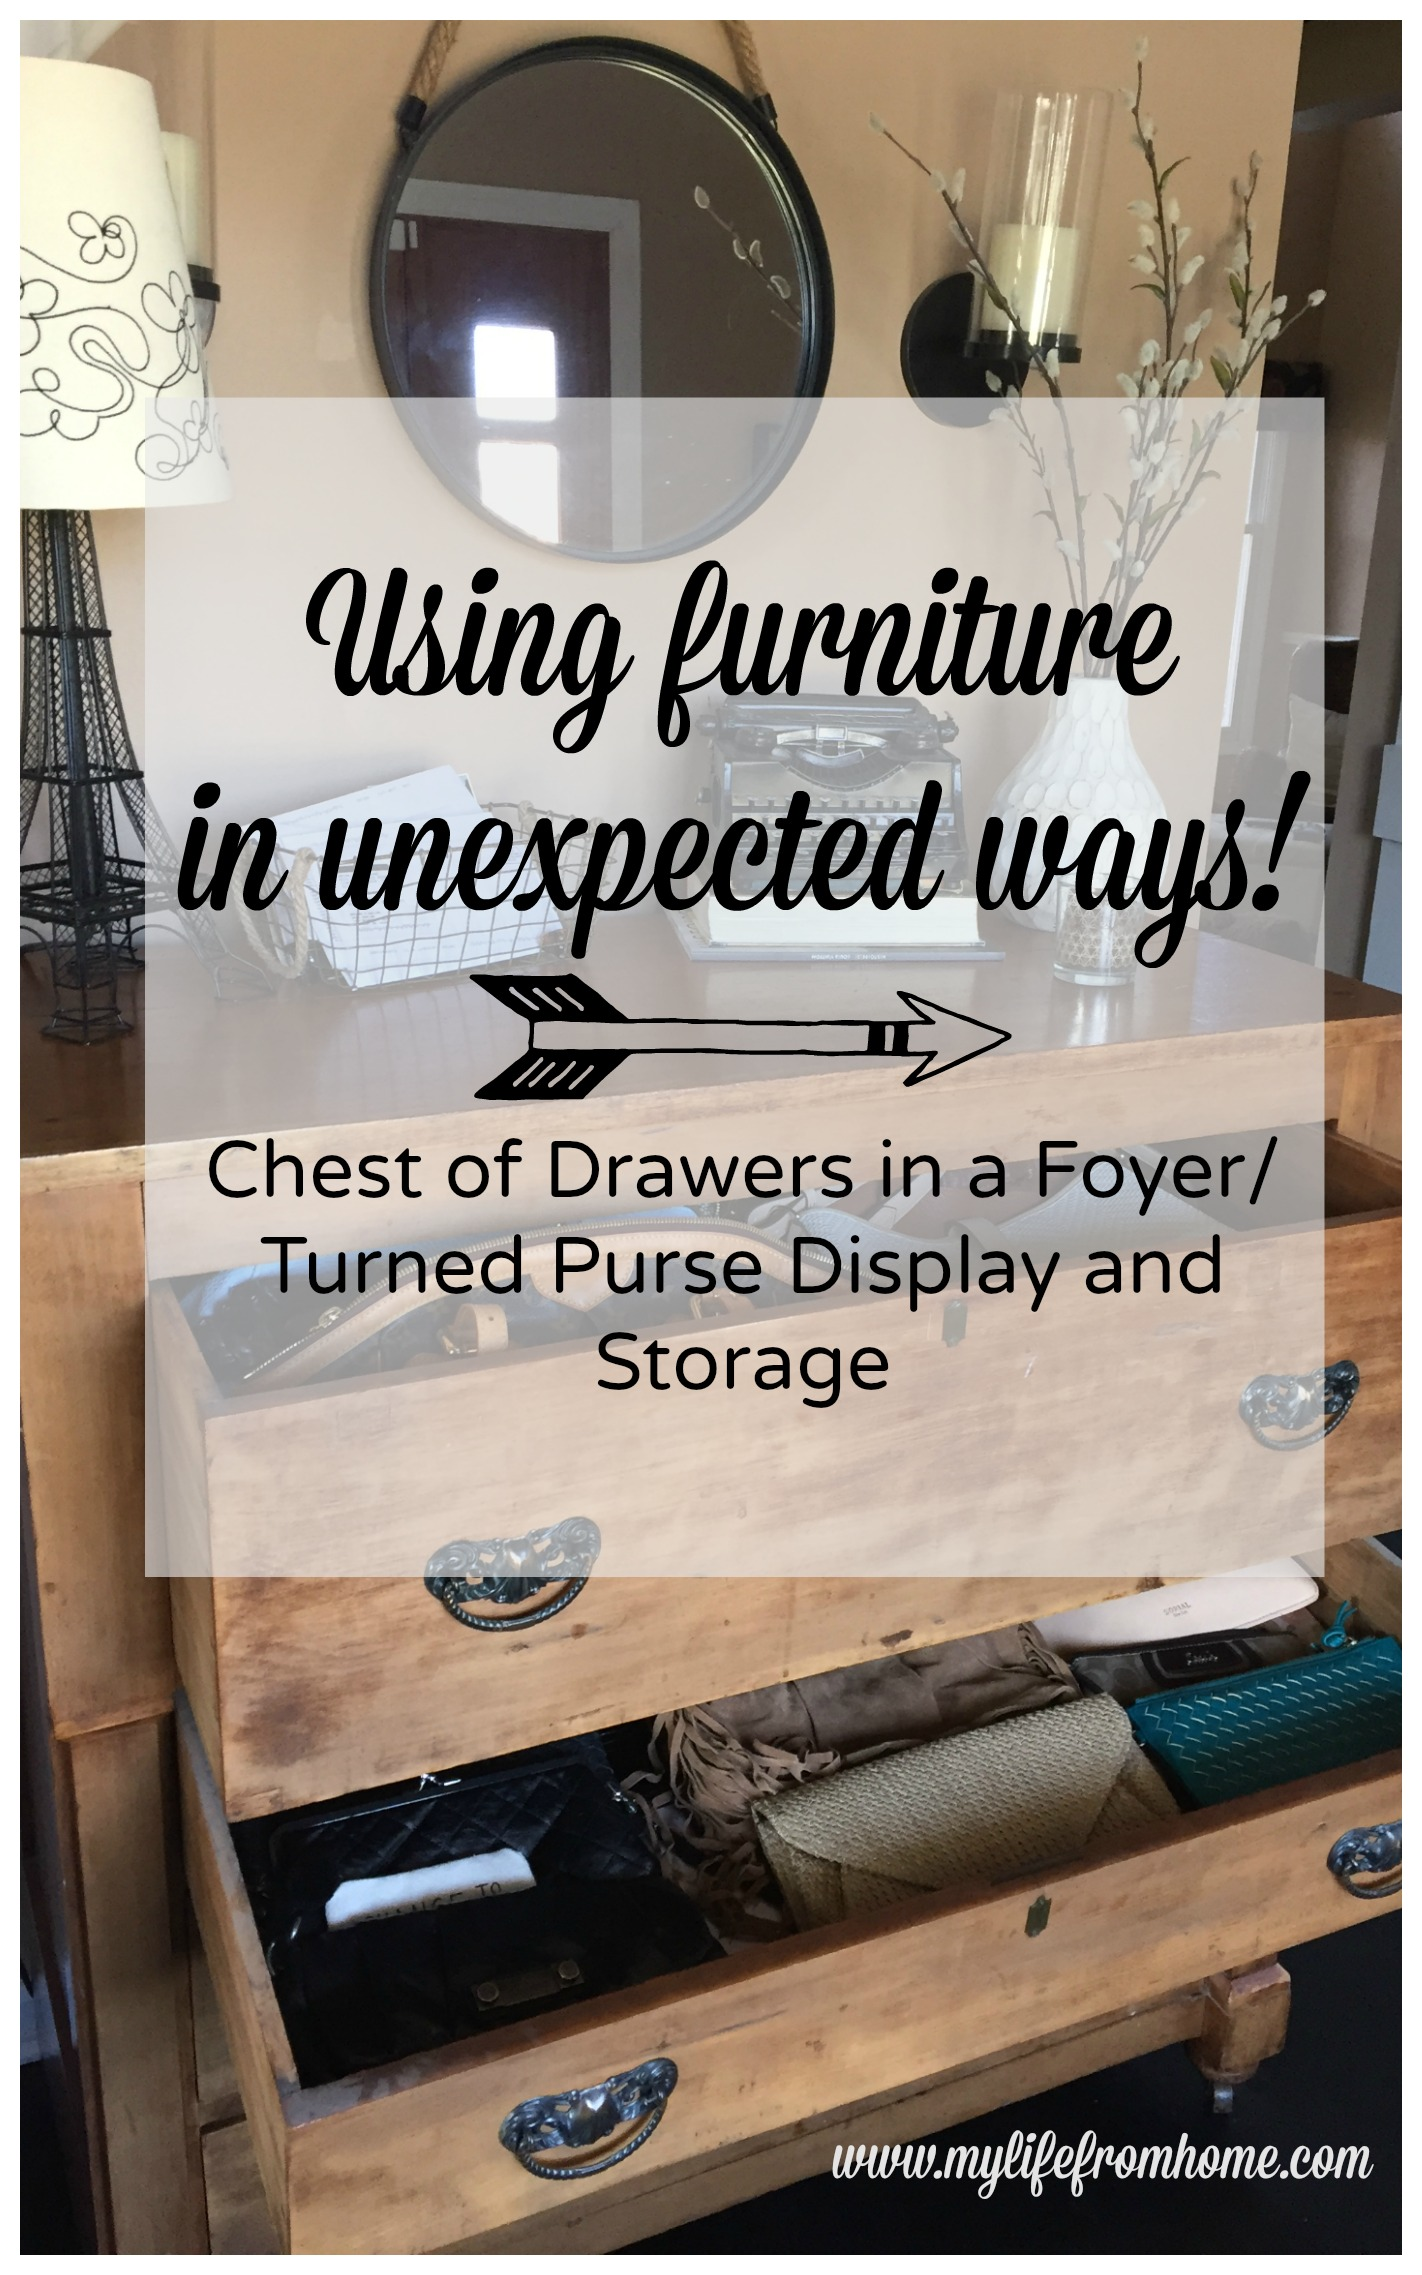 Using furniture in unexpected ways by www.mylifefromhome.com